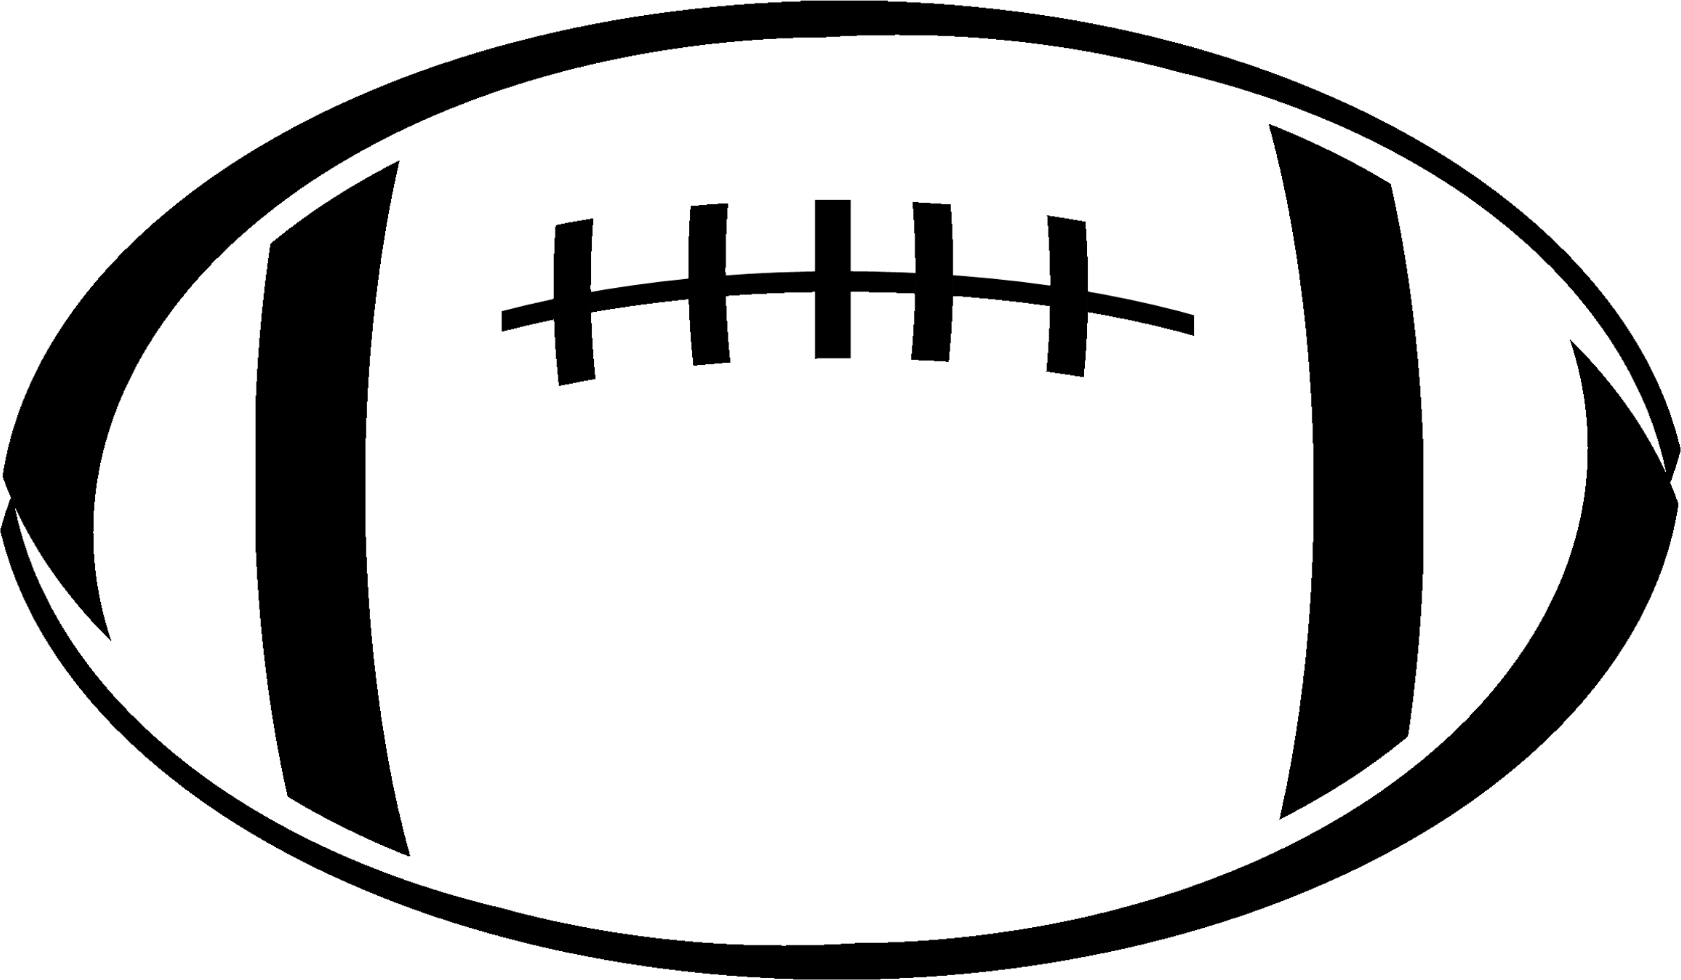 Football Images For Drawing